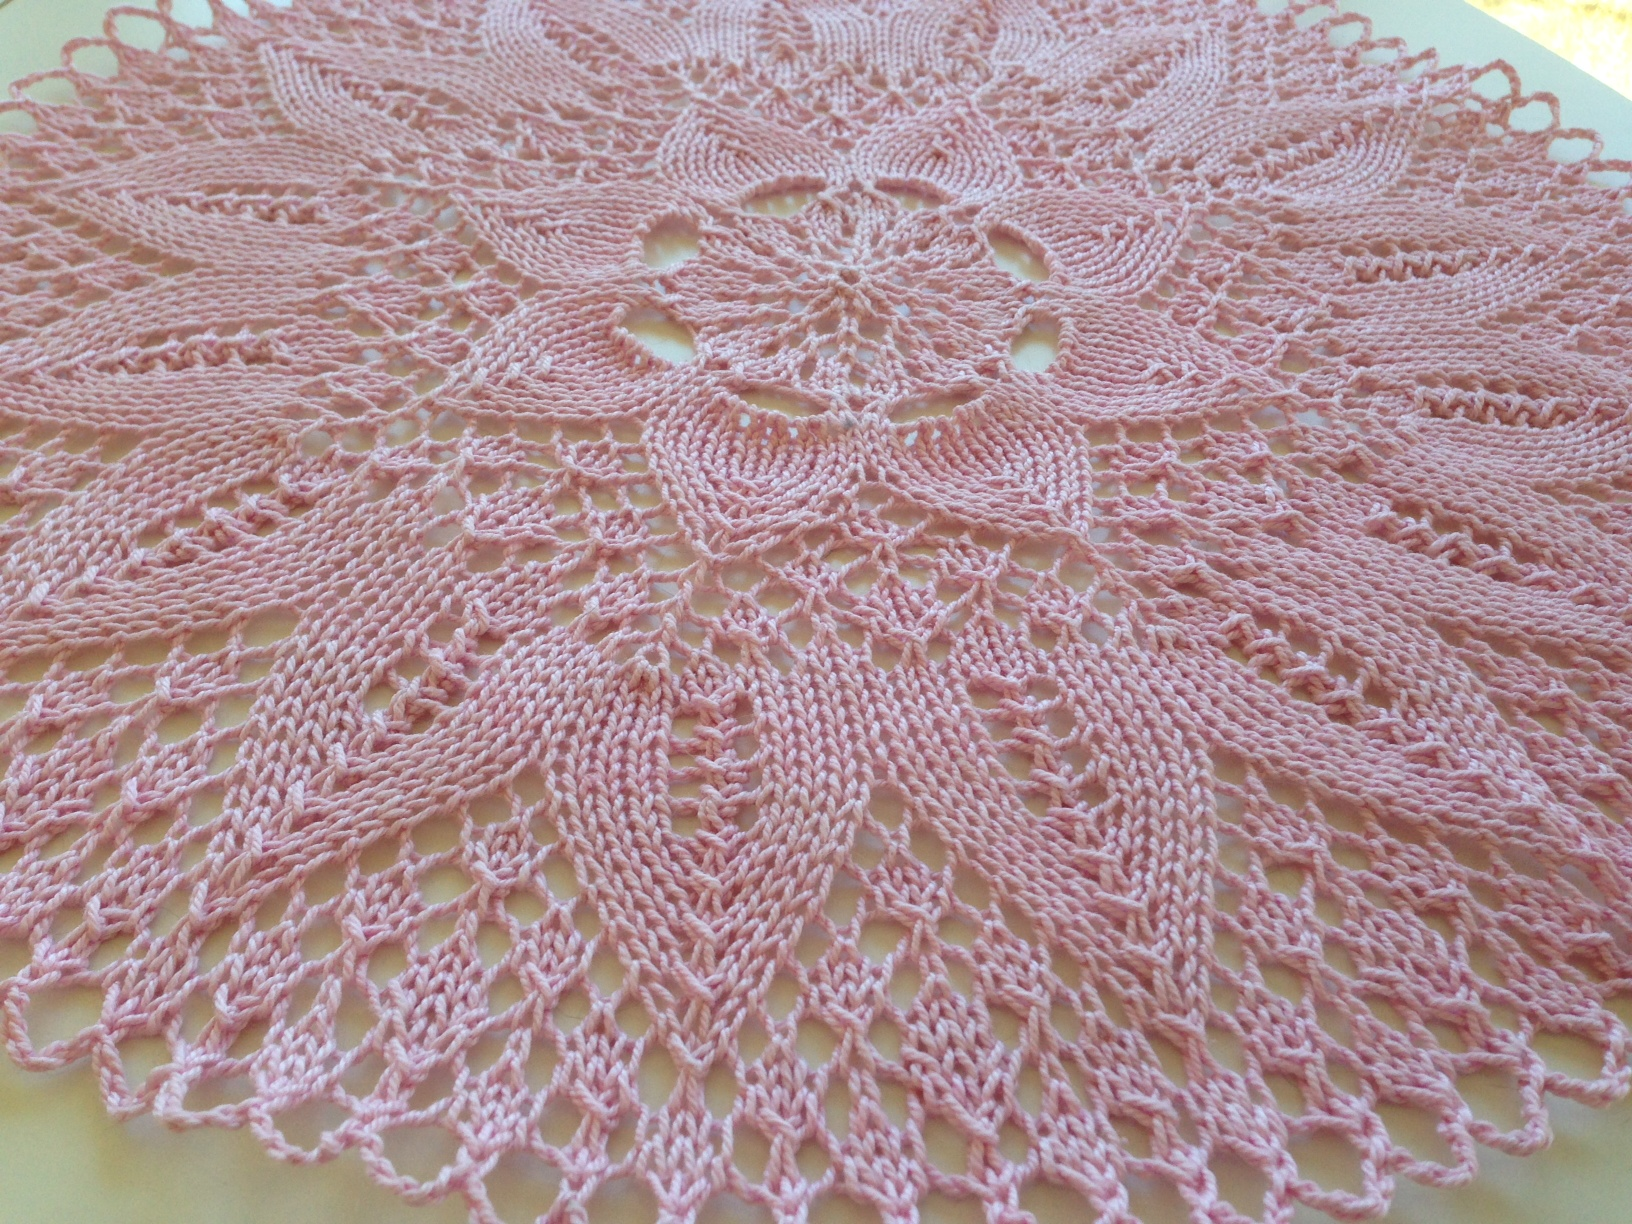 Knitted Doily Patterns | Dress images